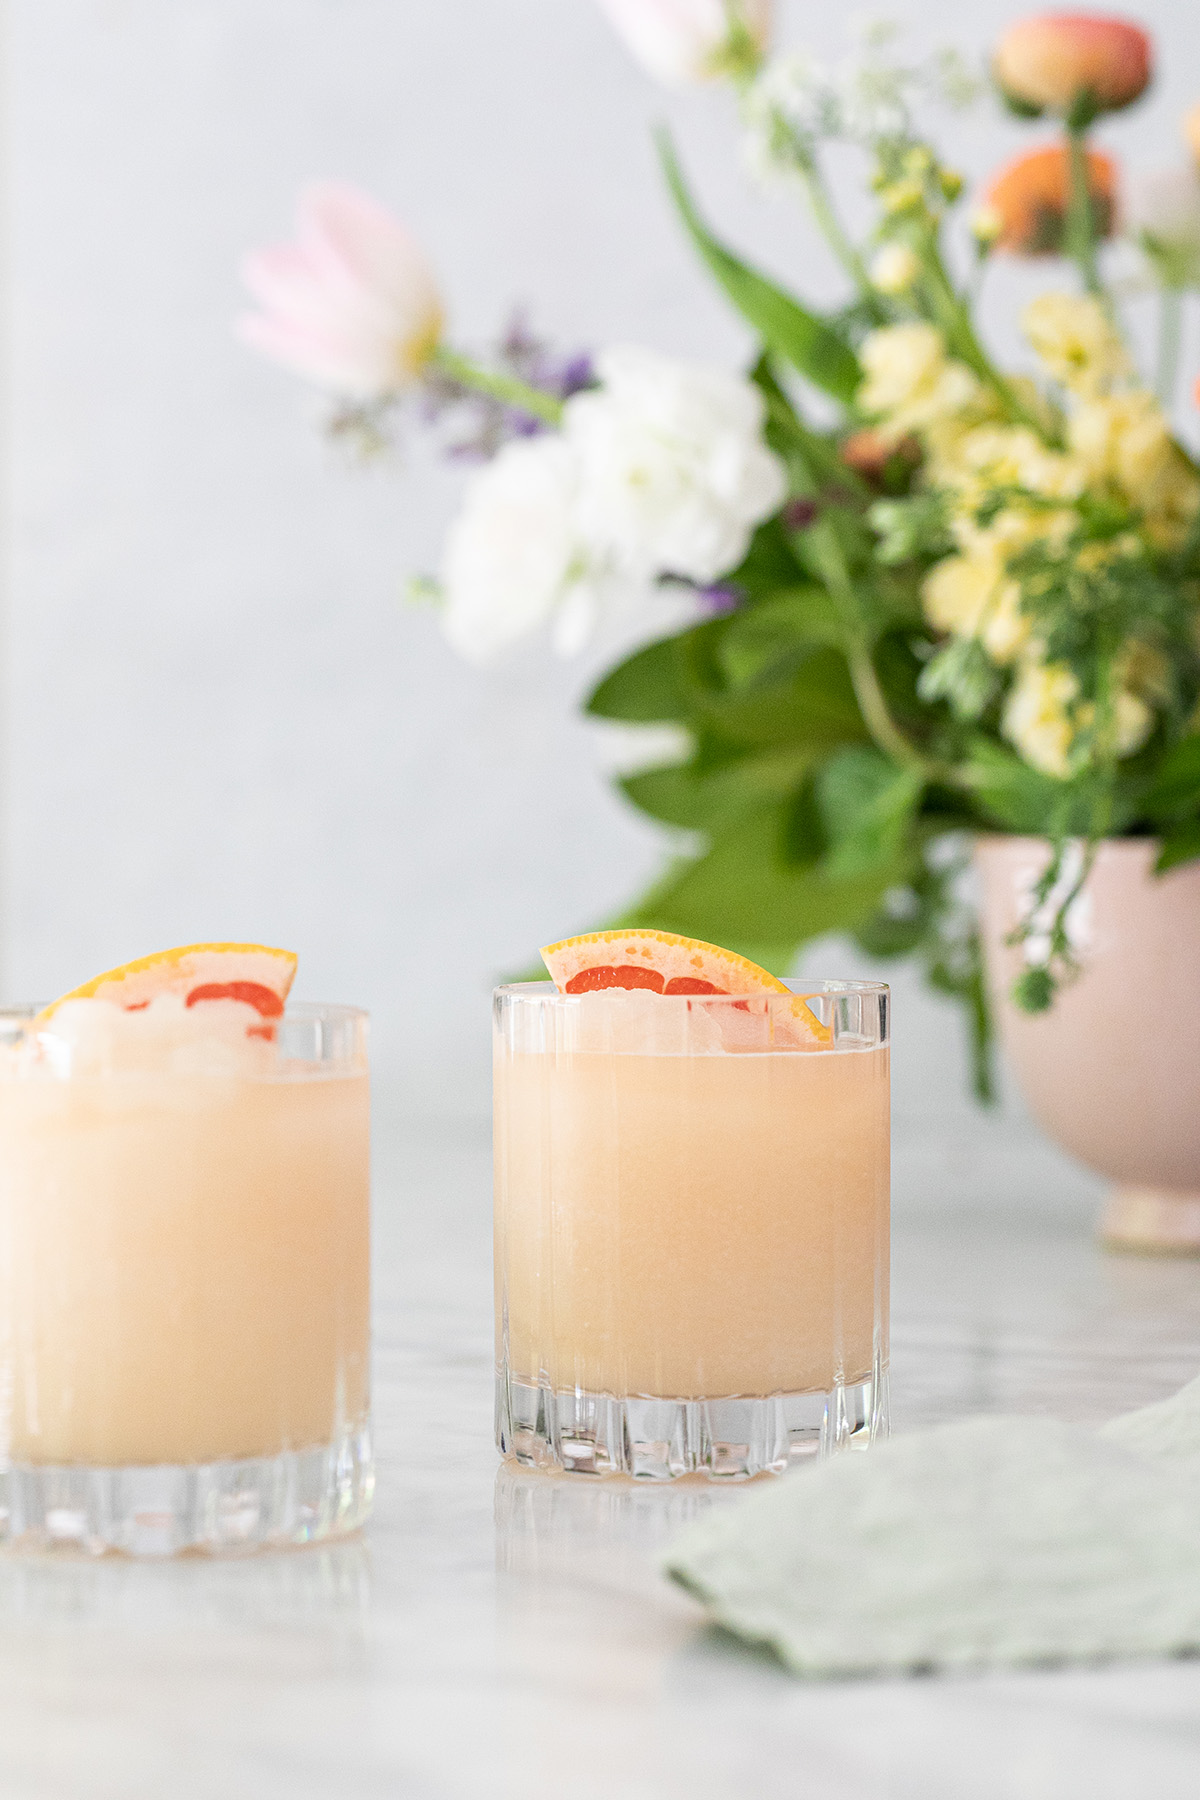 Frozen Paloma cocktail in a glass with flowers behind it